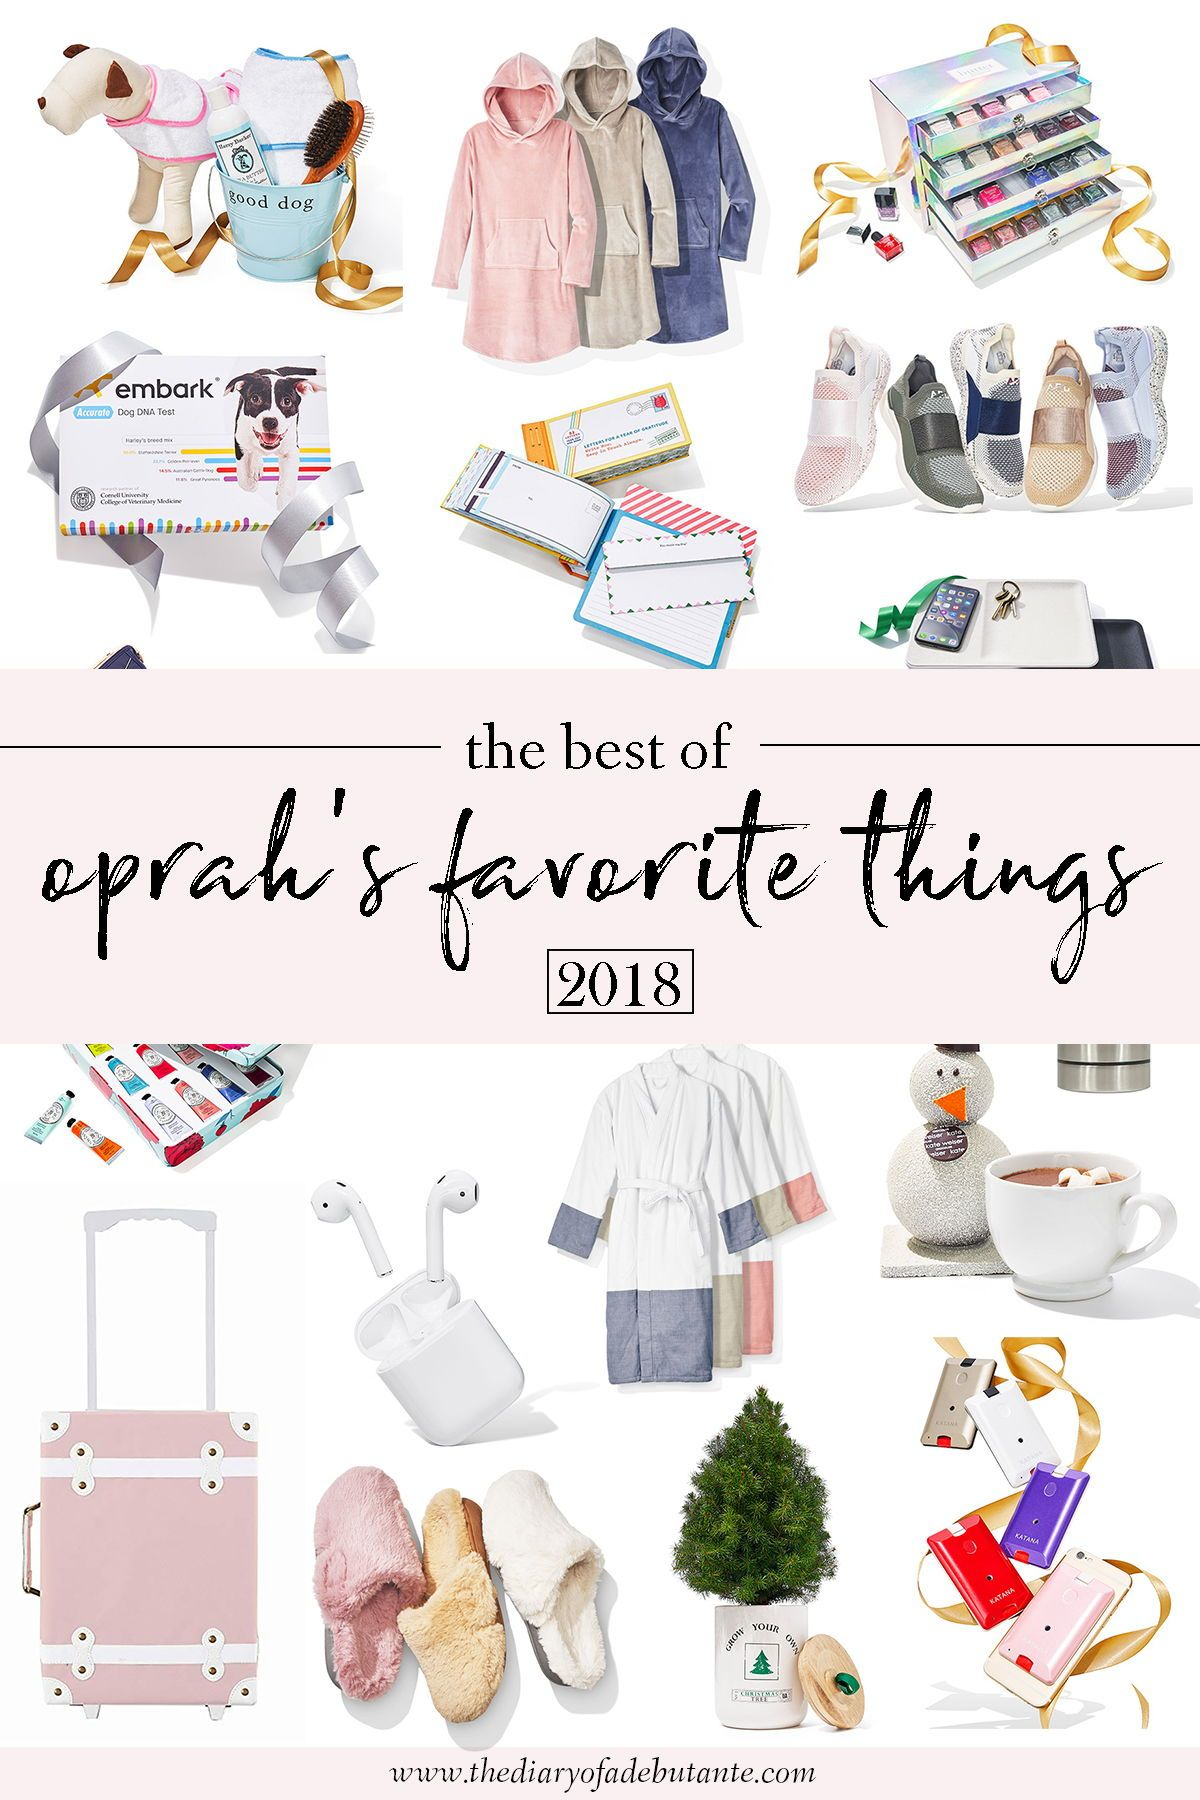 Have you check out this year's list of Oprah's Favorite Things?! There are  so many incredible products and gifts for everyone on your list at all  price ...